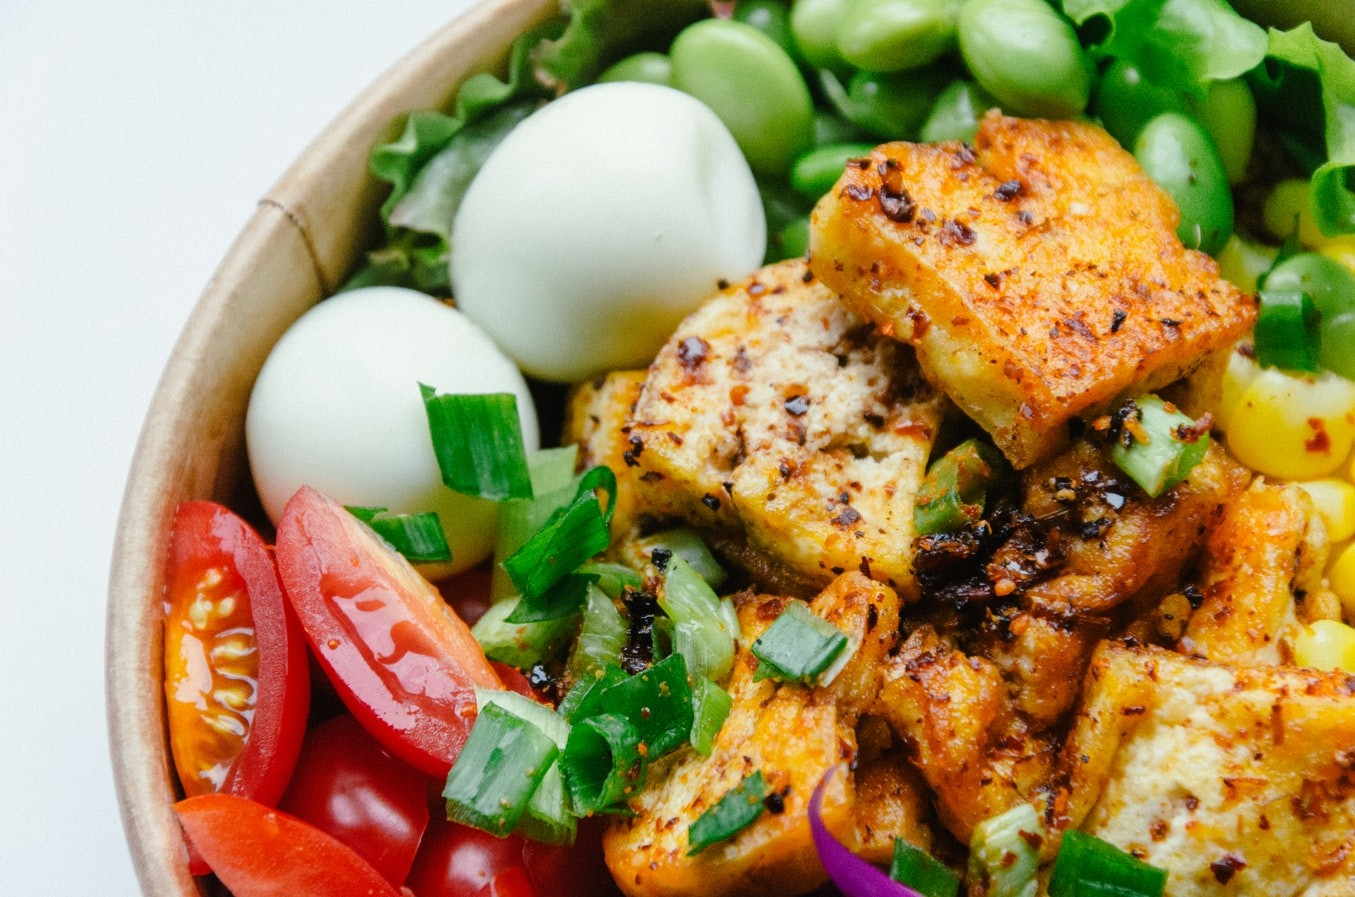 A bowl of tofu with vegetables and hard boiled eggs